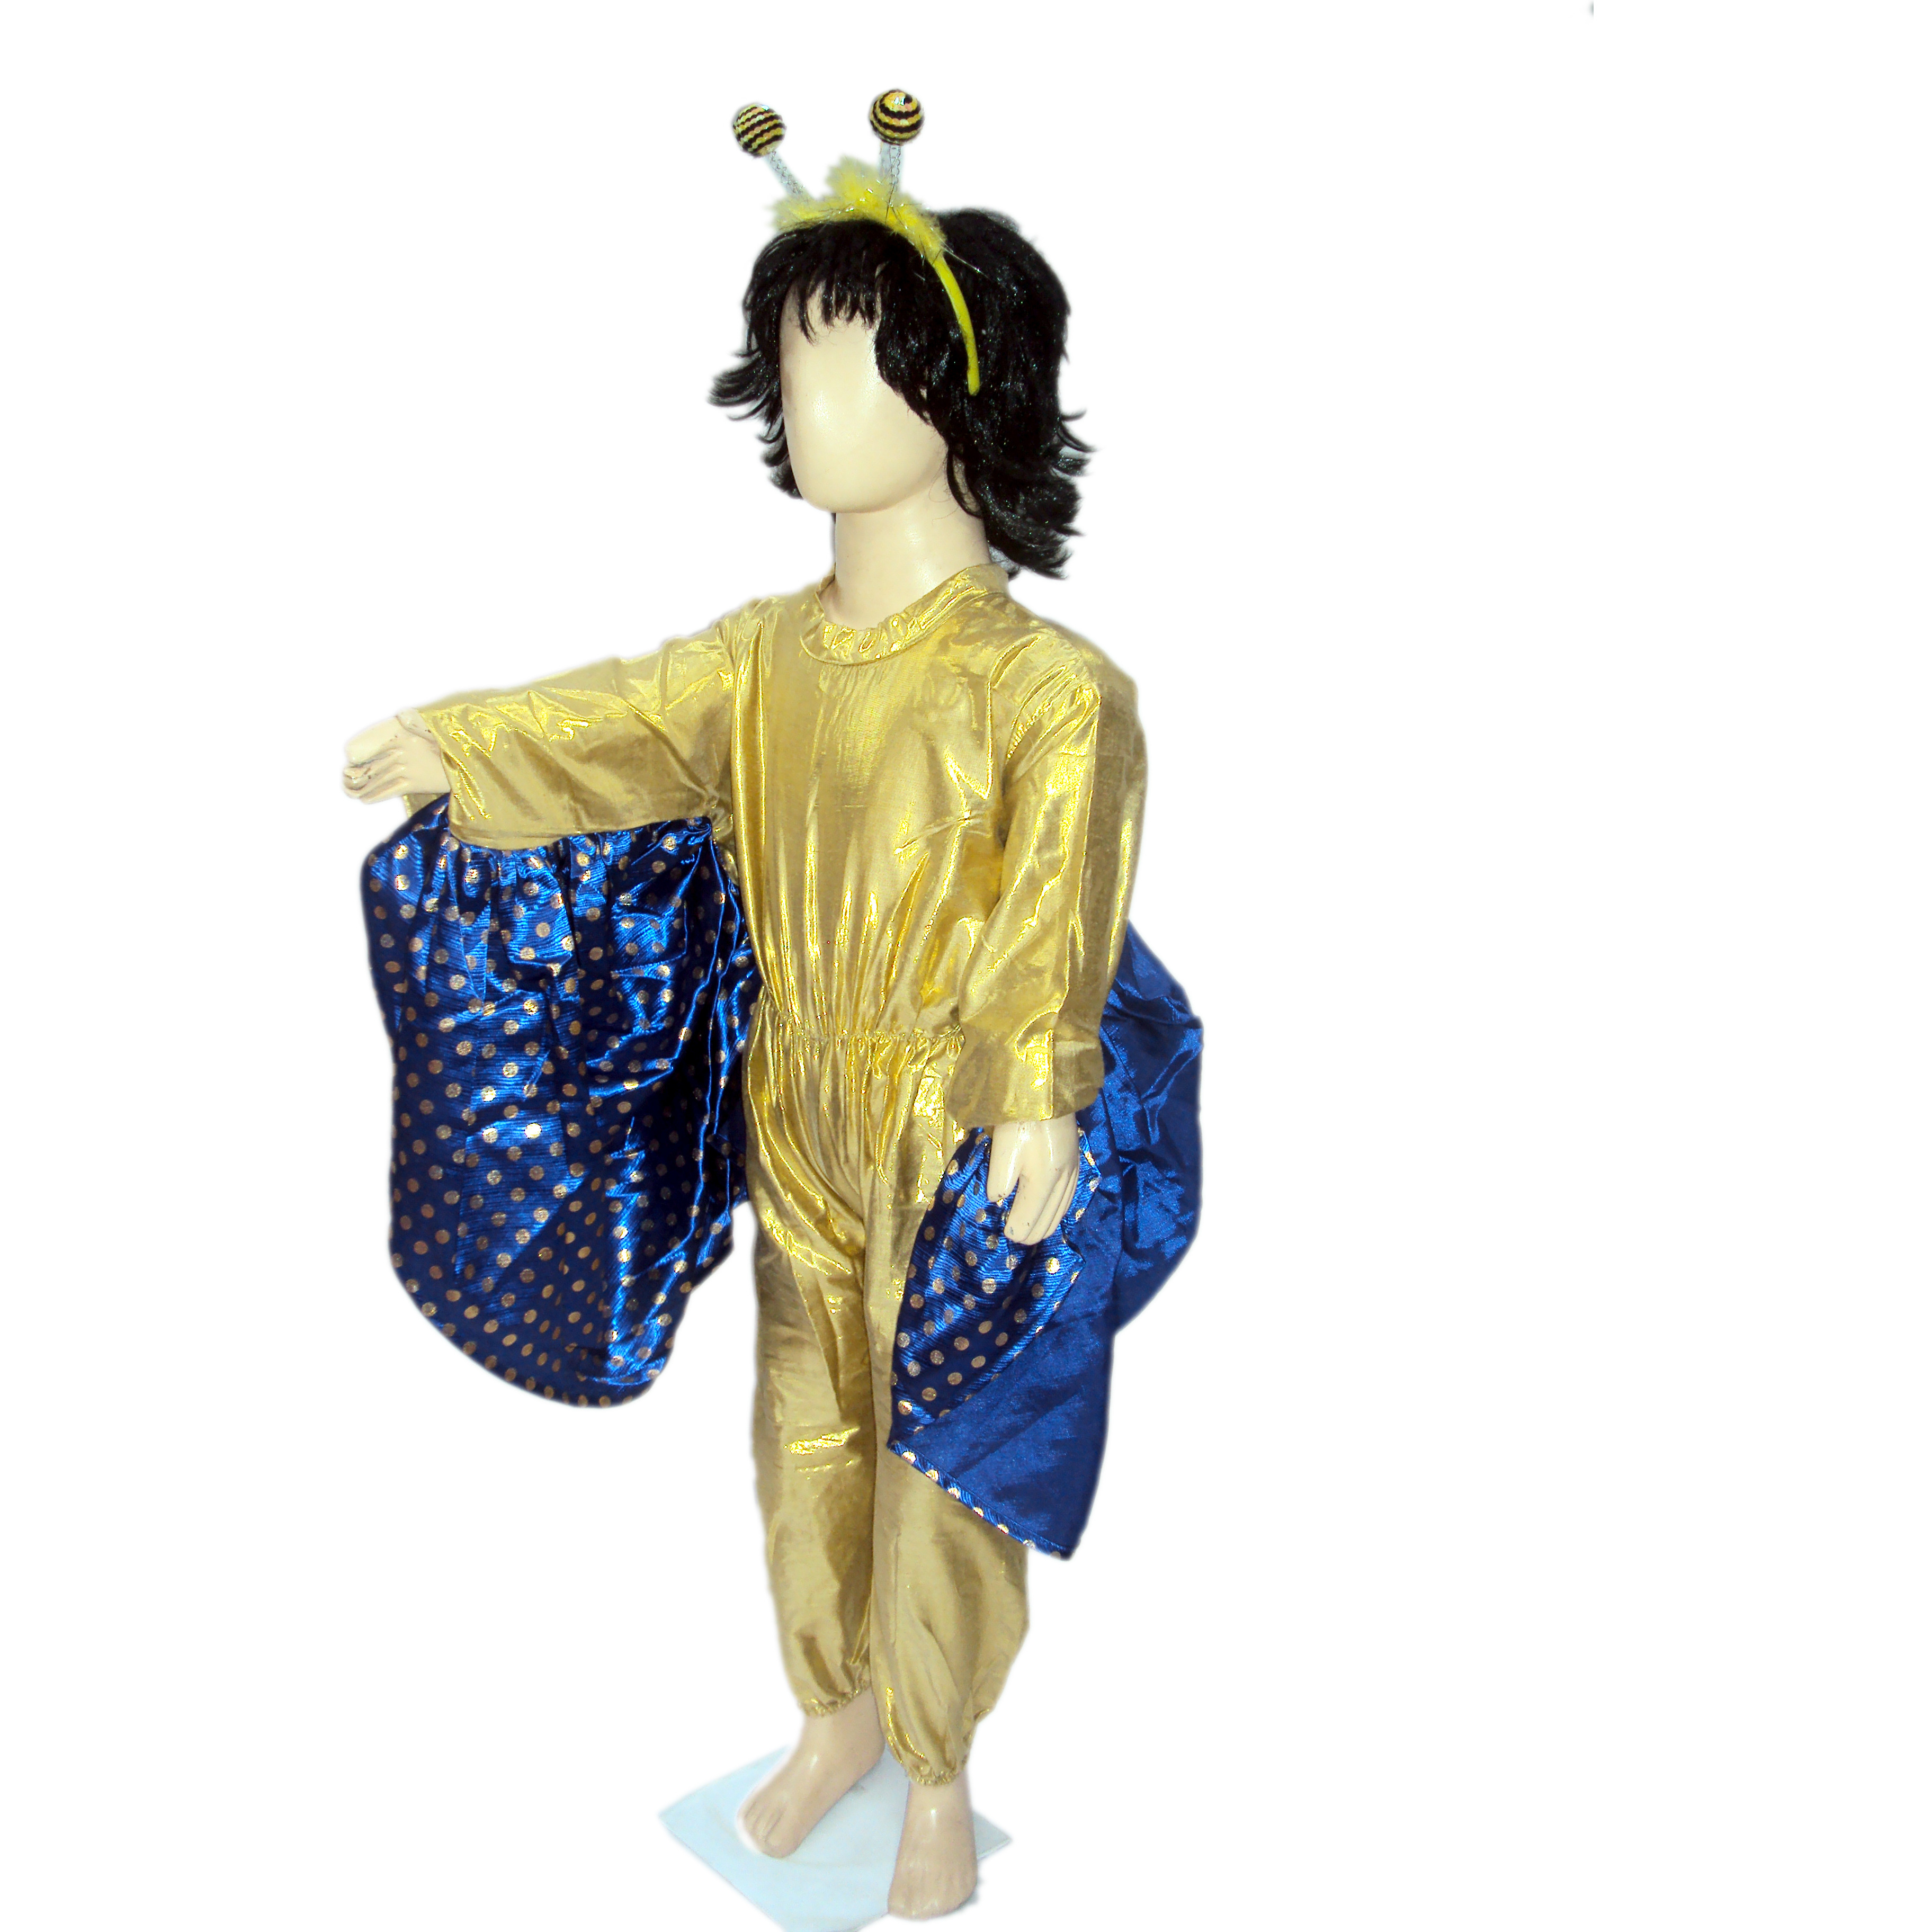 KFD Butterfly Boy fancy dress for kids,Insect Costume for School Annual Function/Theme Party/Competition/Stage Shows Dress